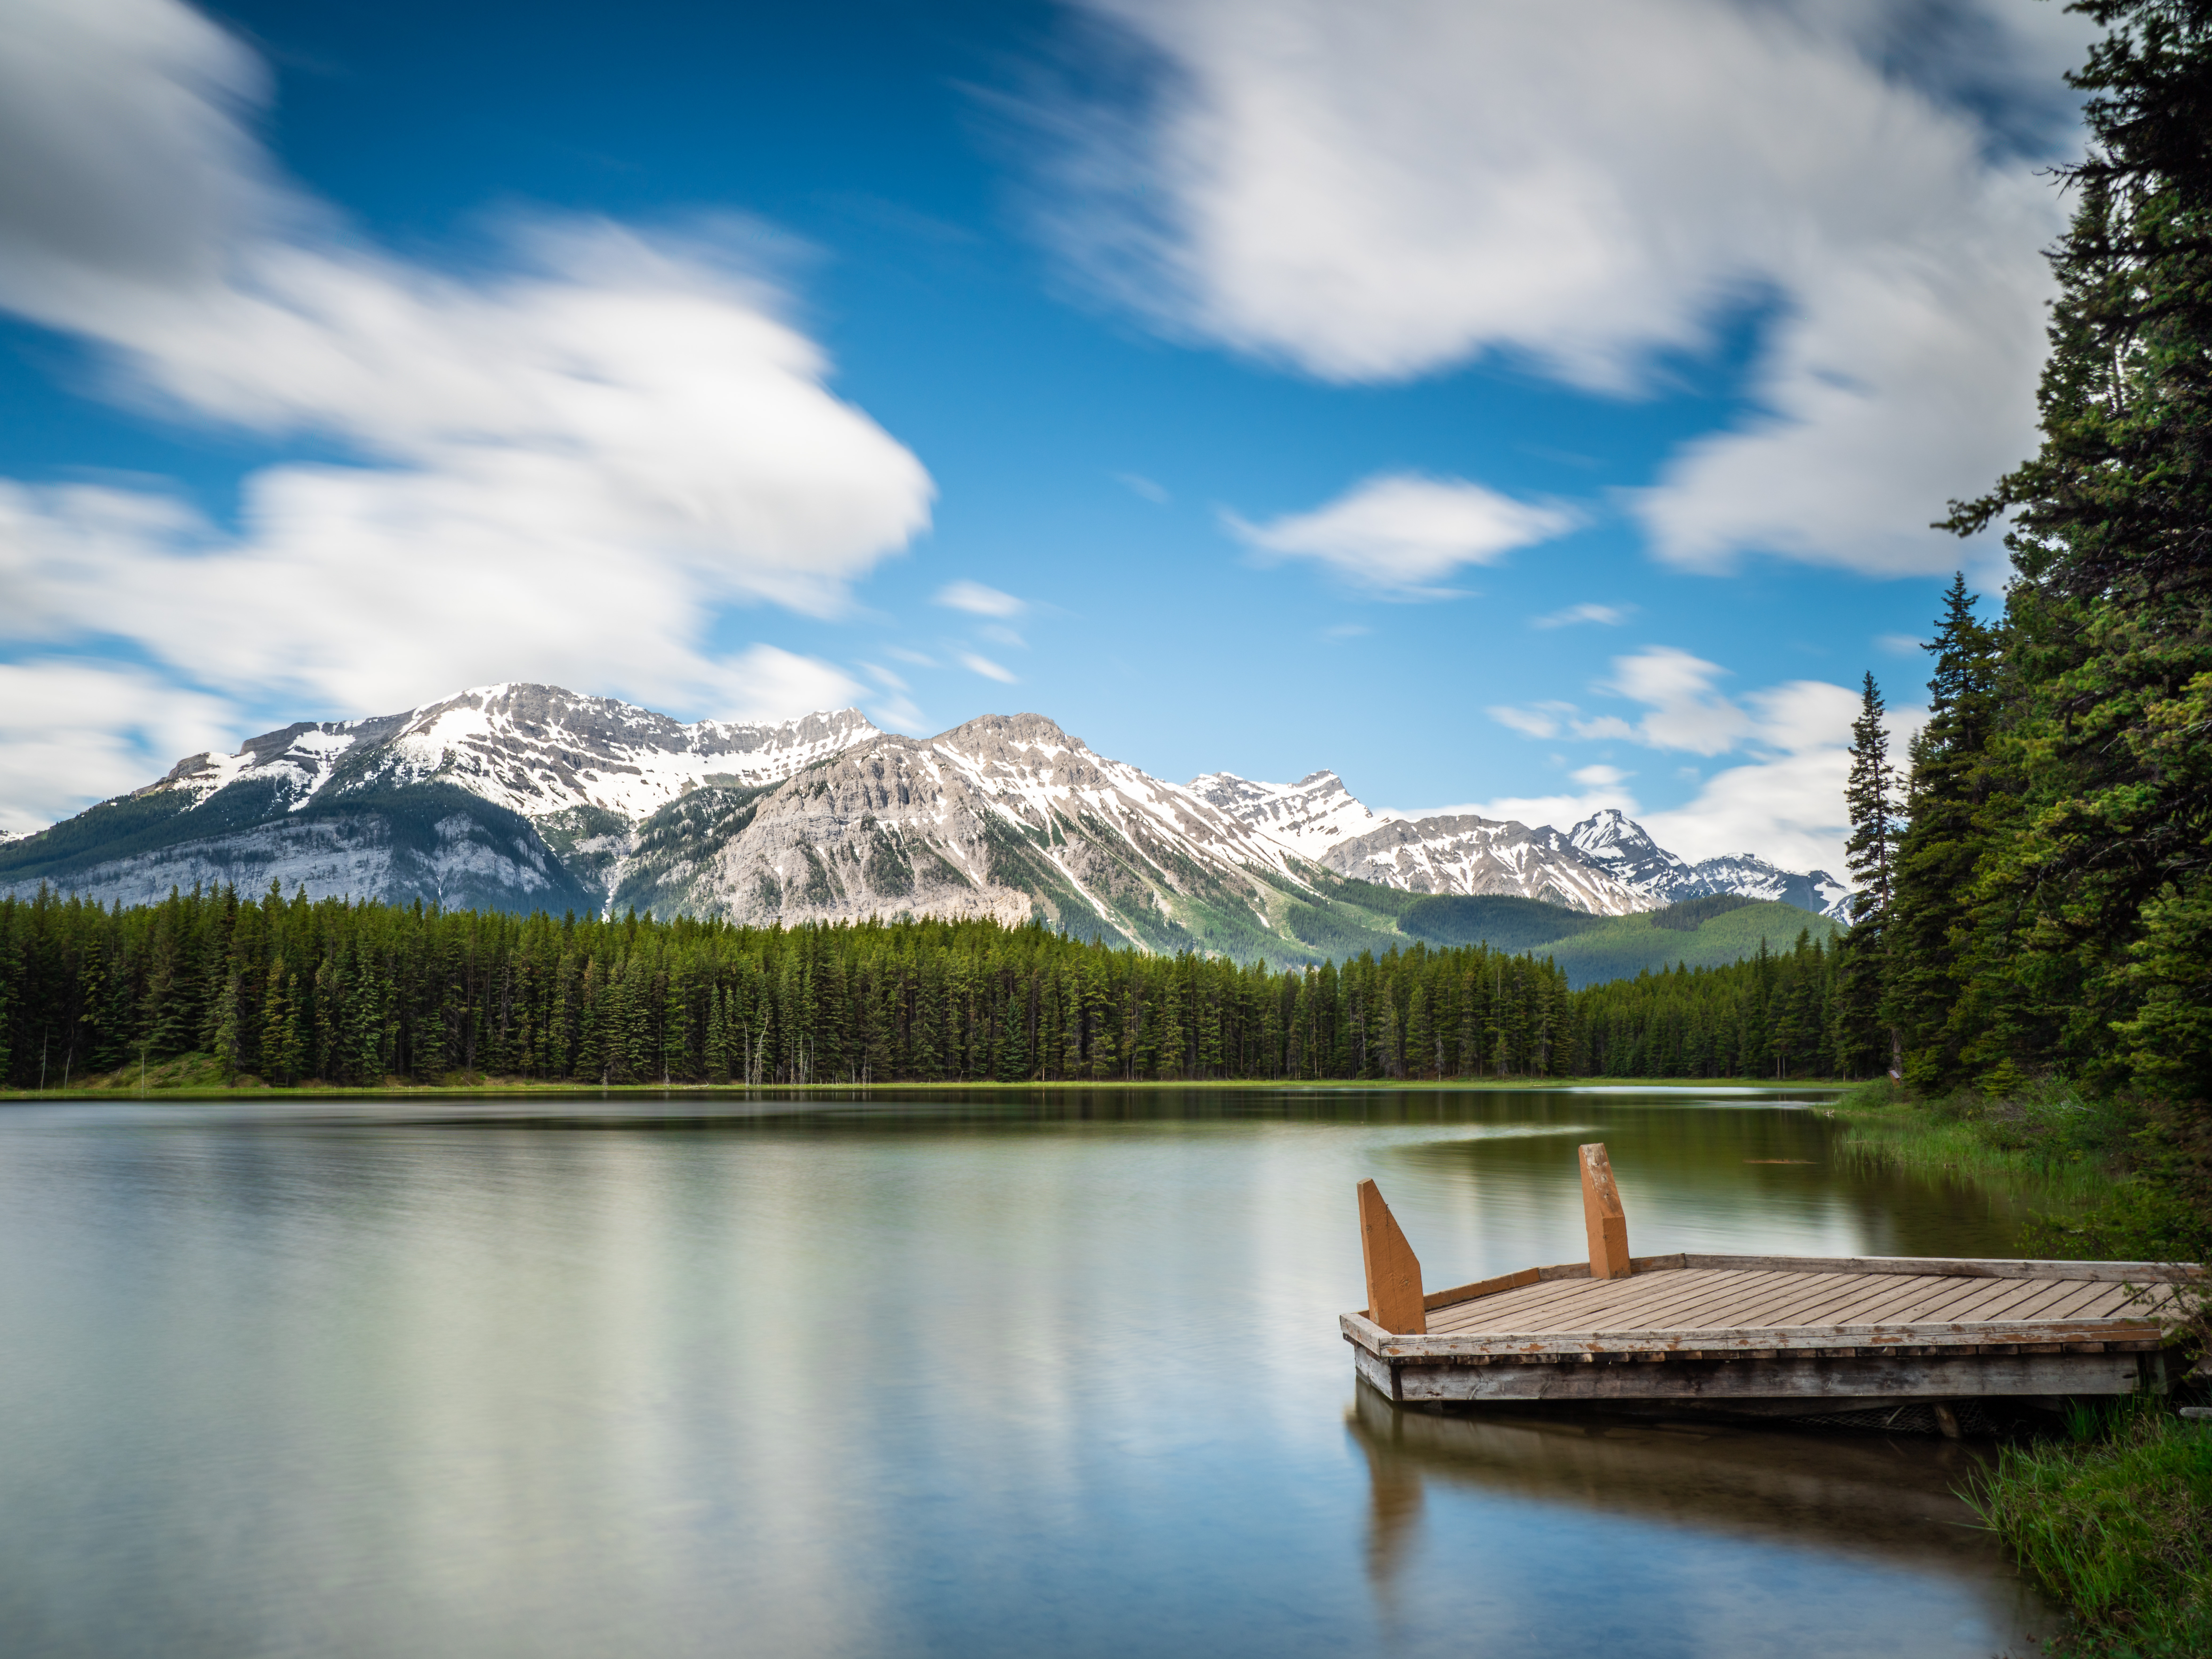 A shot of Marl Lake and Gap Mountain in the background in Kananaskis Country, Alberta, Canada